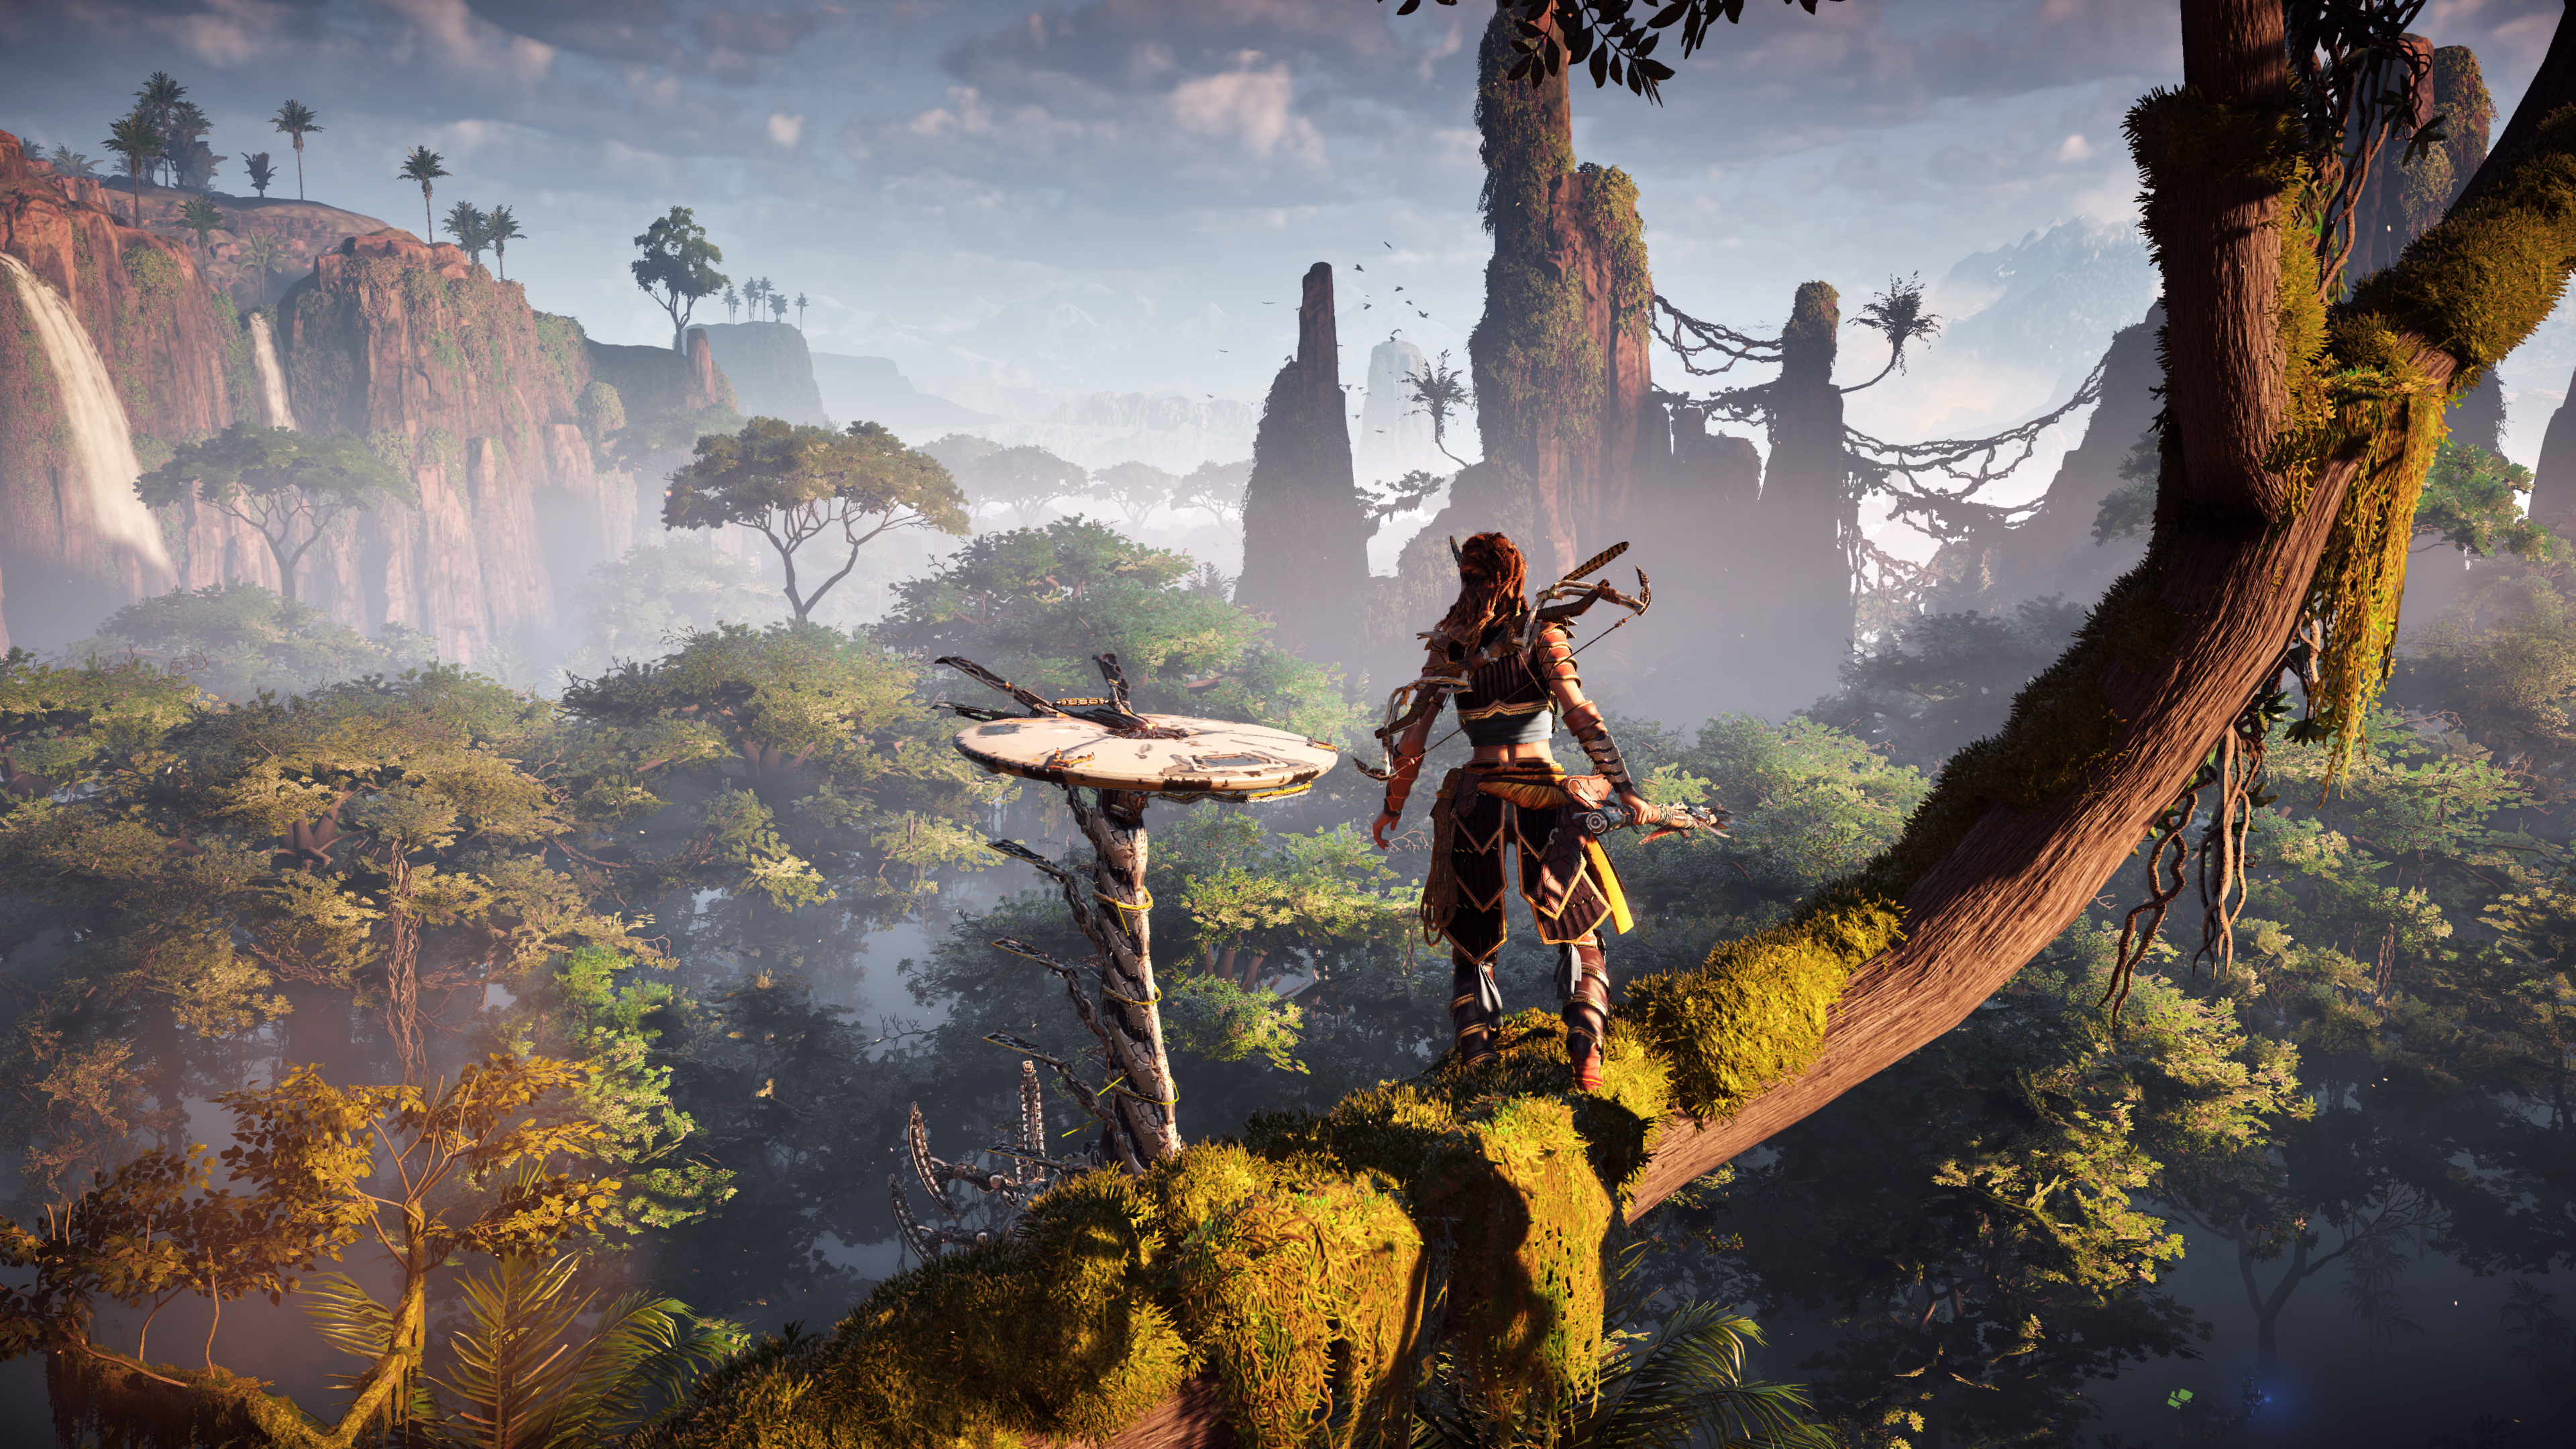 Horizon Zero Dawn is now available as part of Sony's free Play At Home program     - CNET